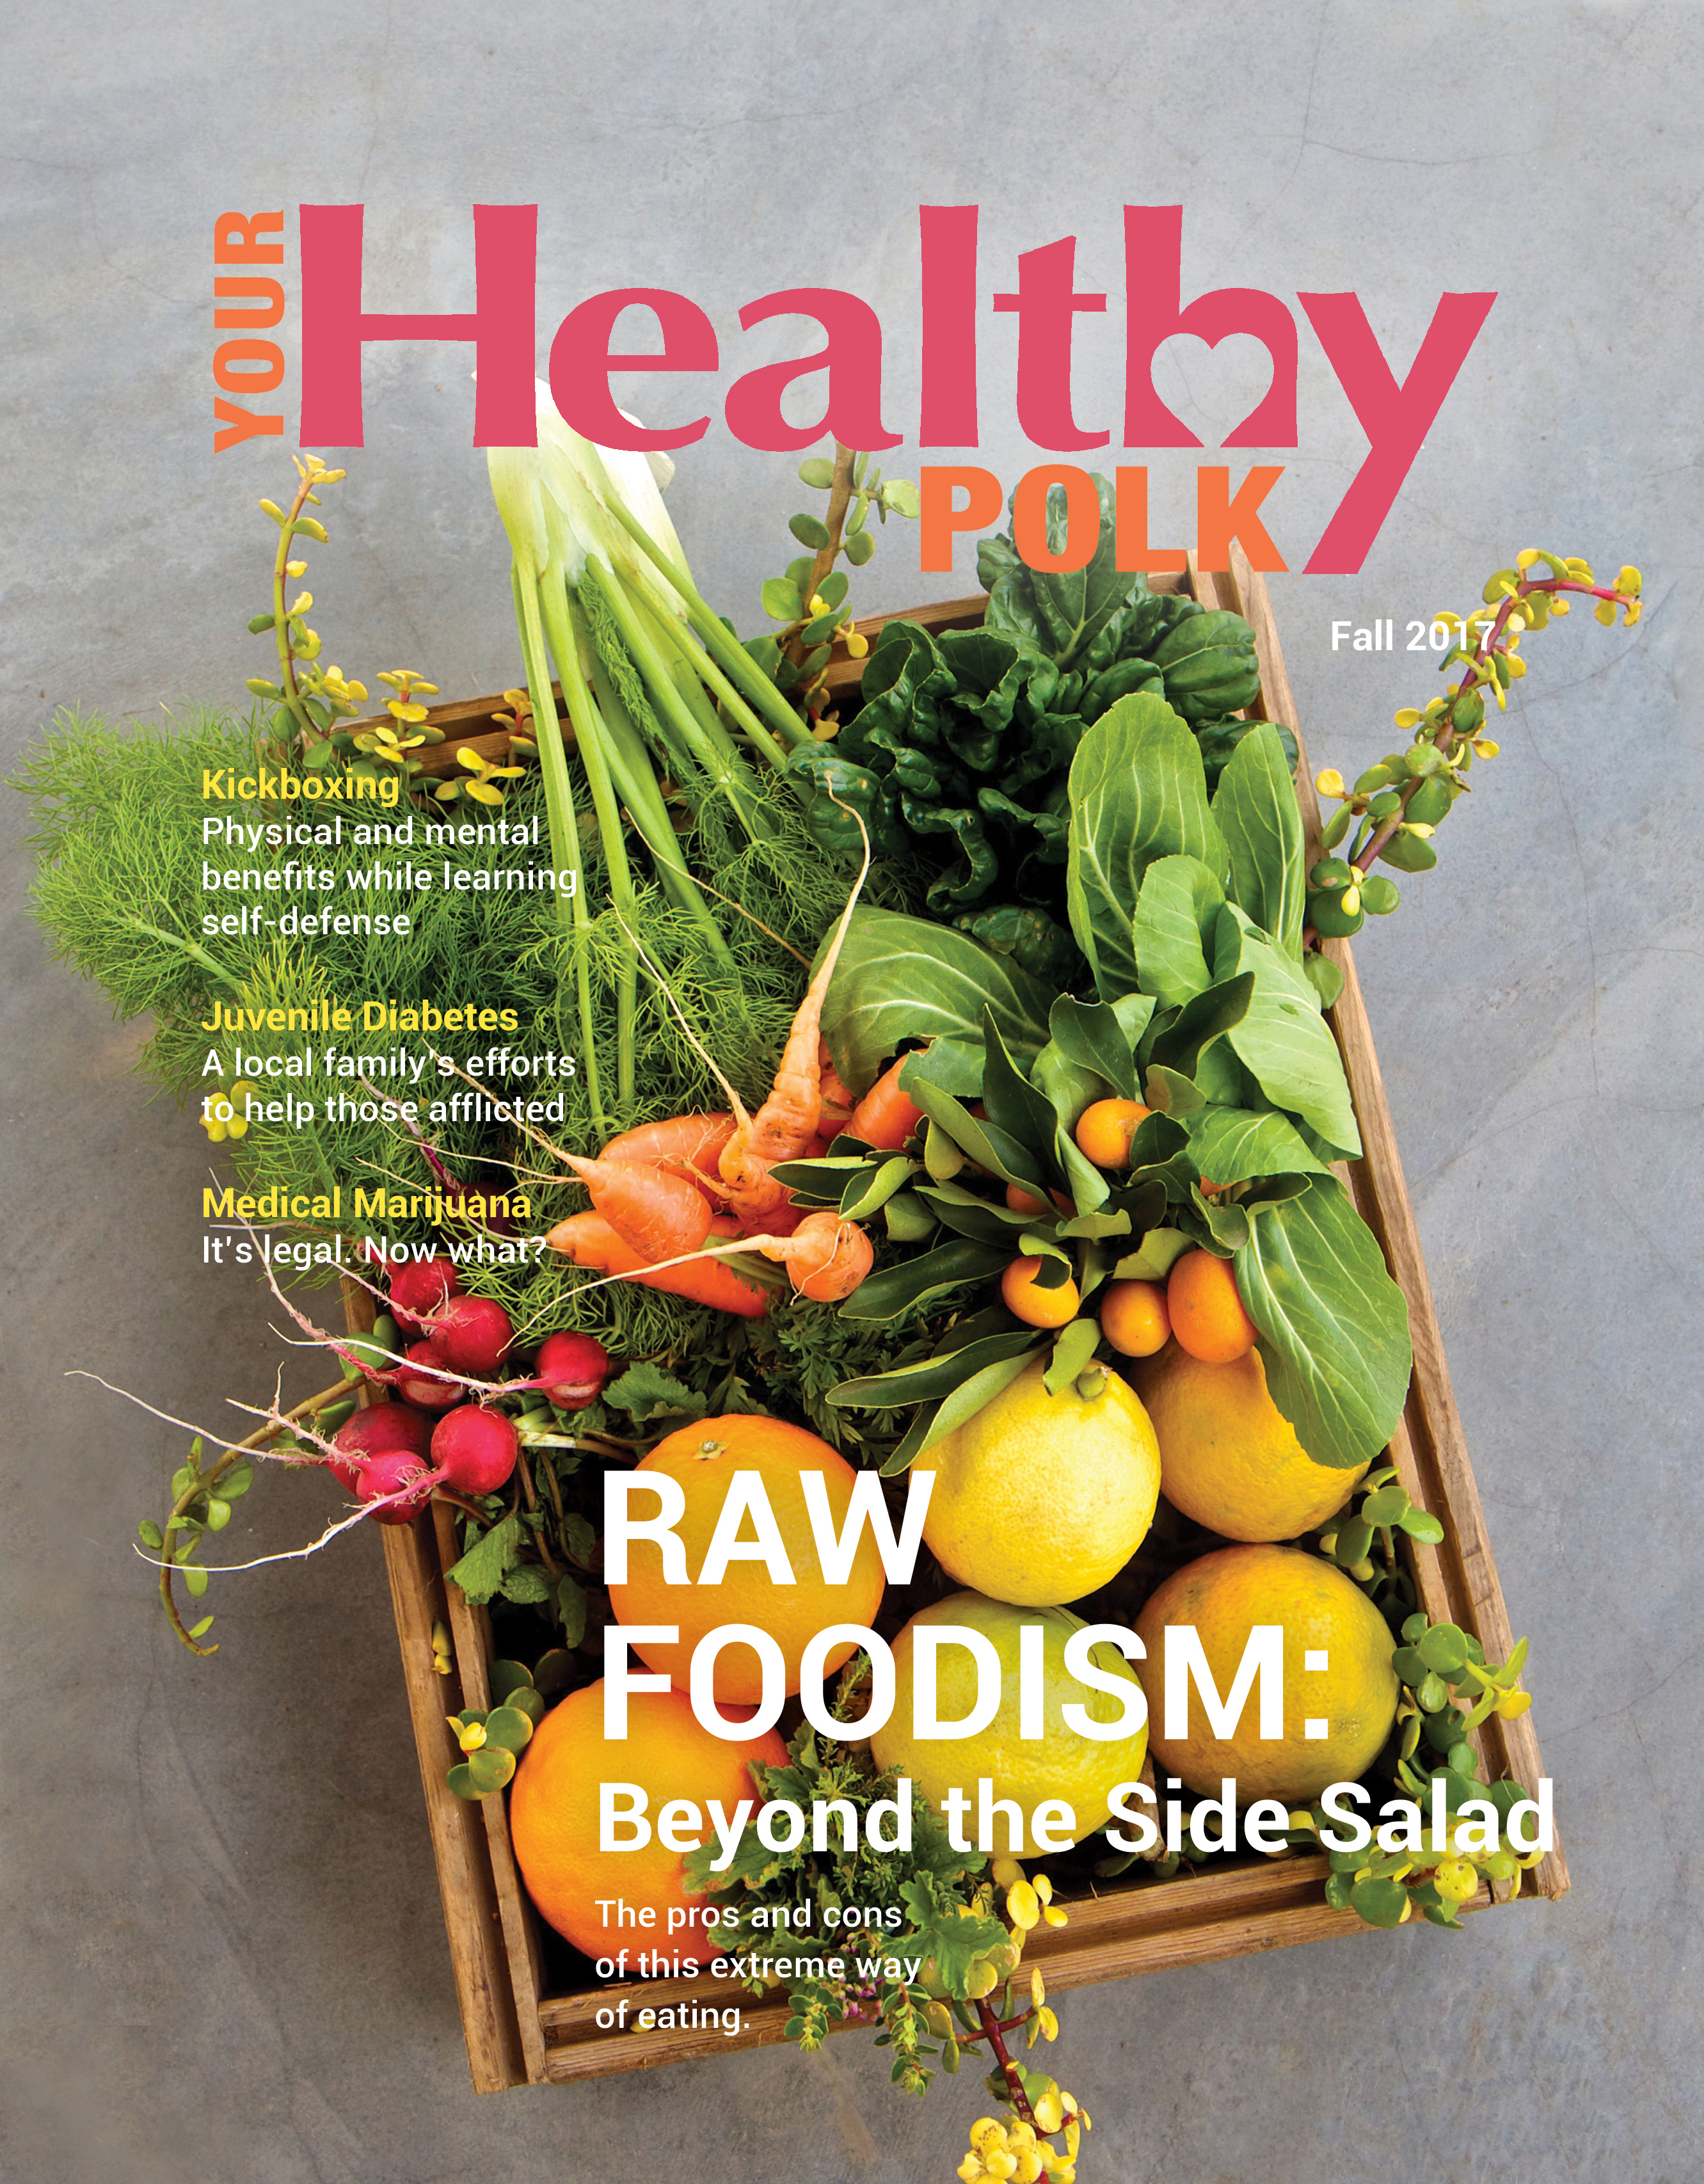 your-healthy-polk-fall-2017-cover